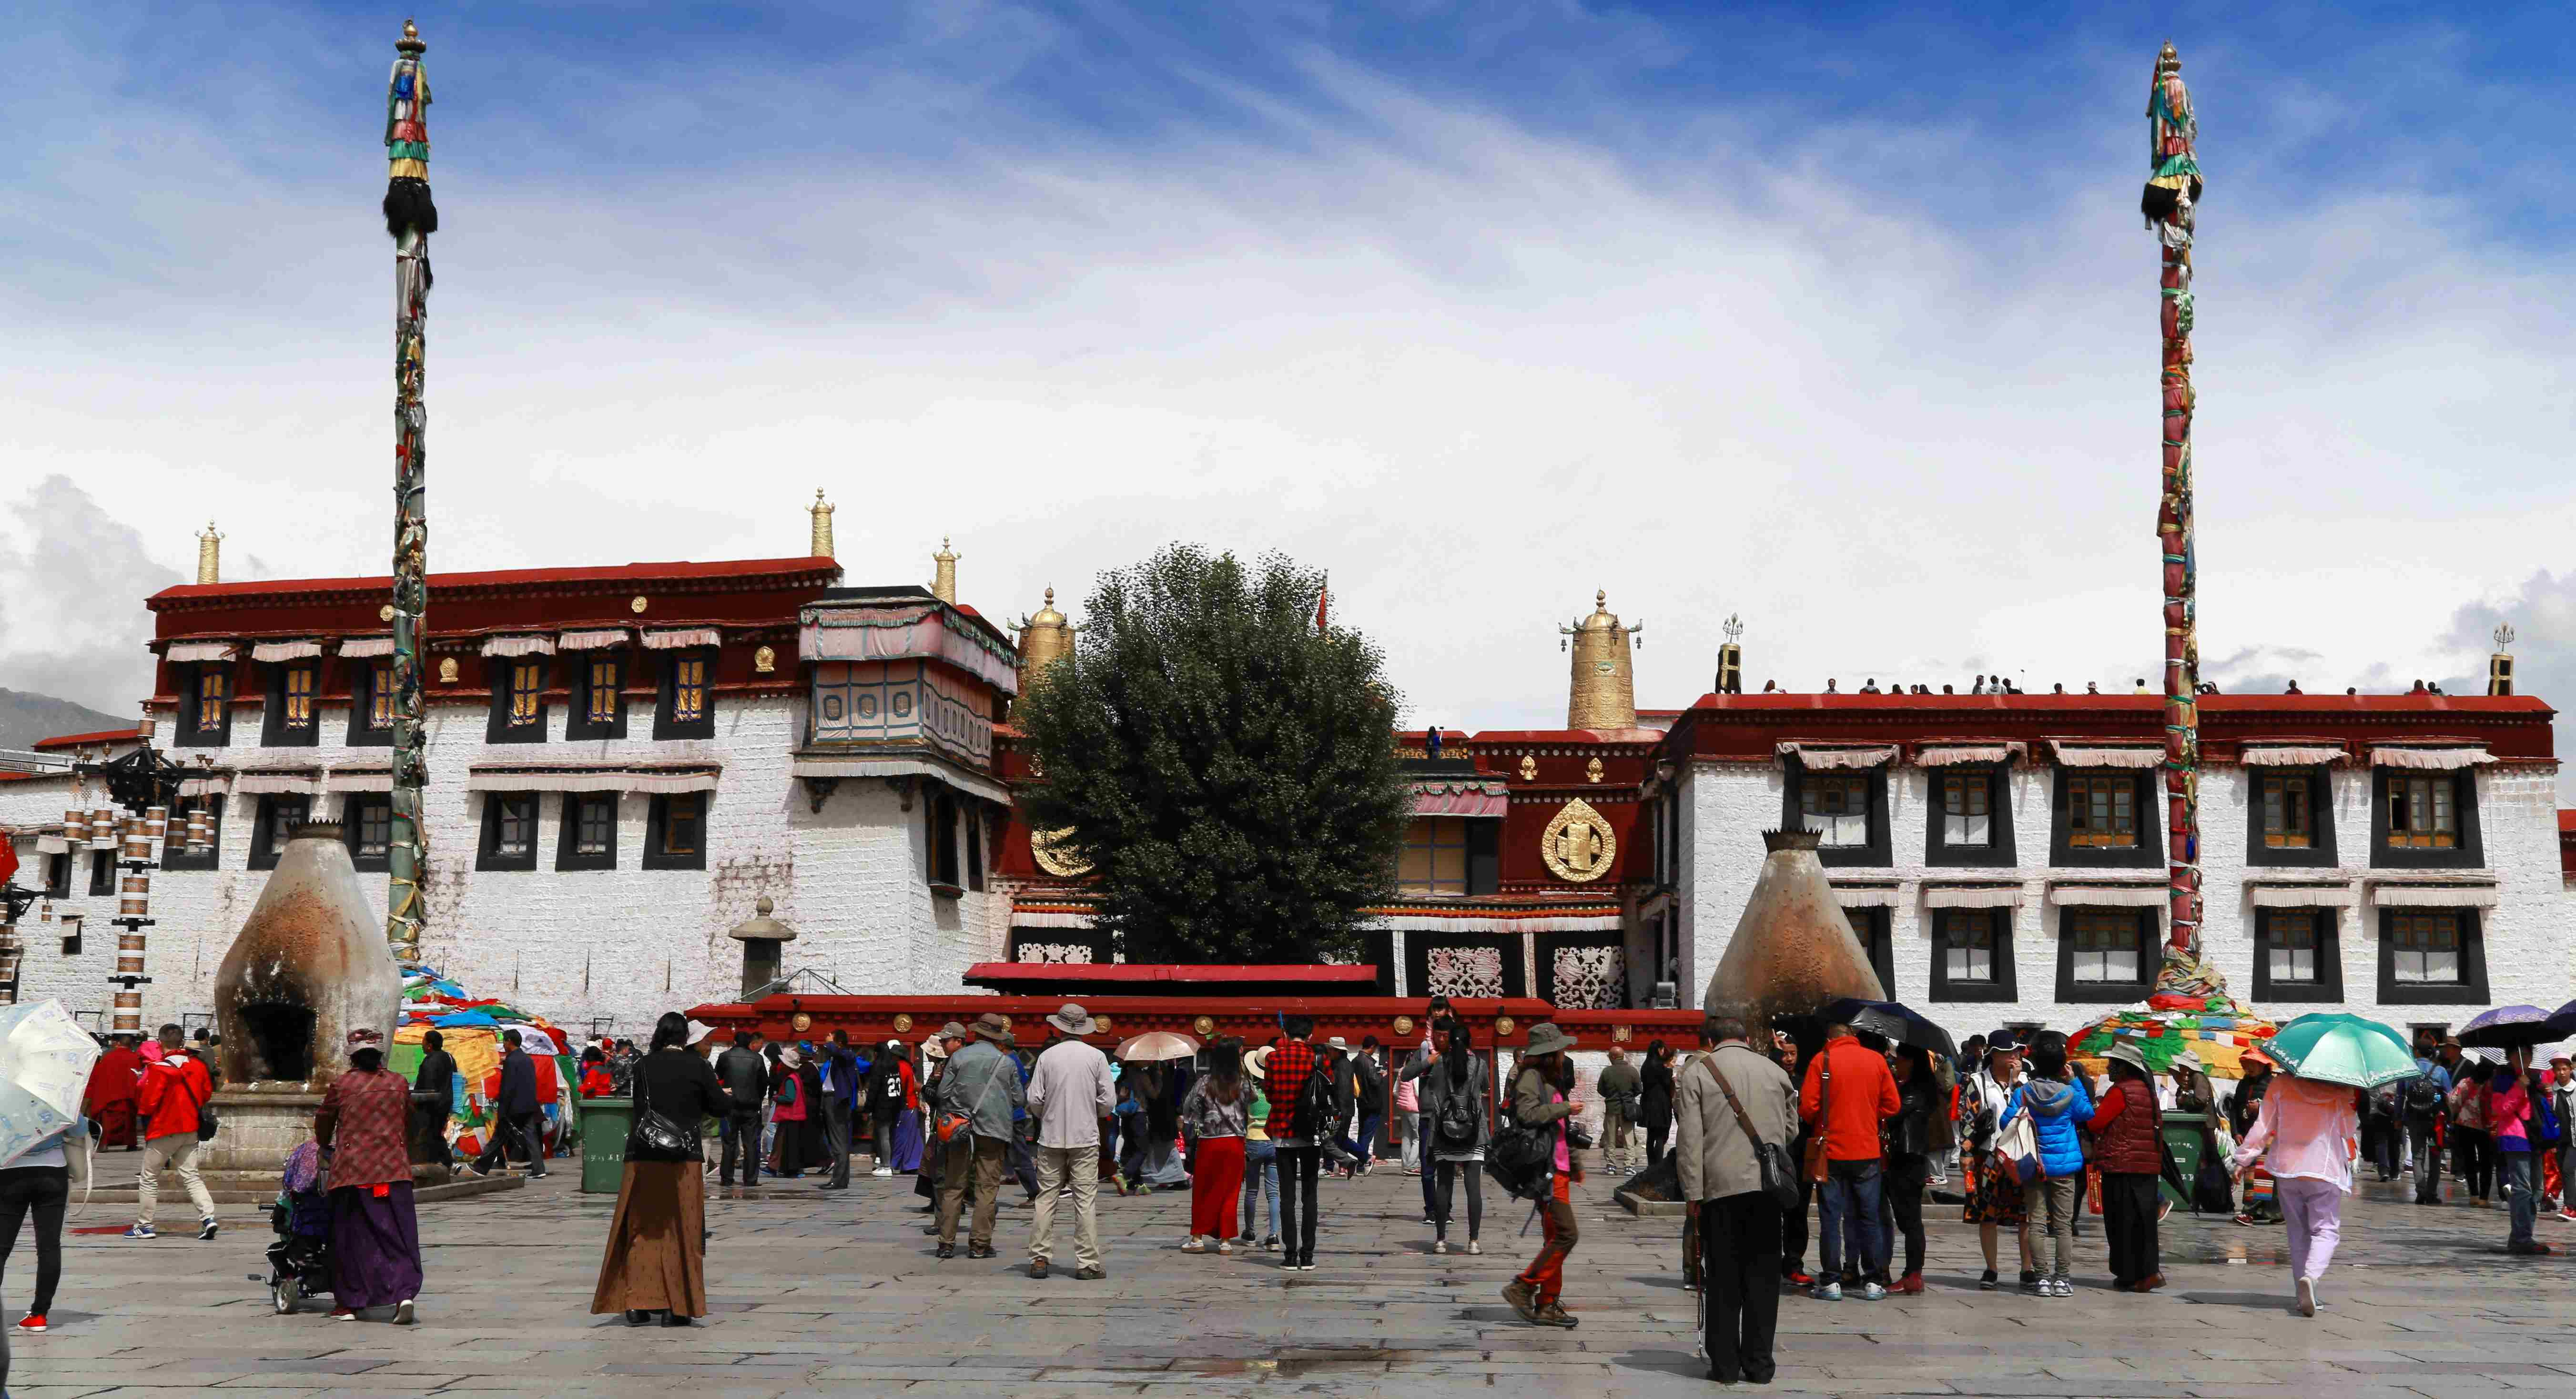 View on Jokhang from the Bakhor Square in Lhasa, Tibet